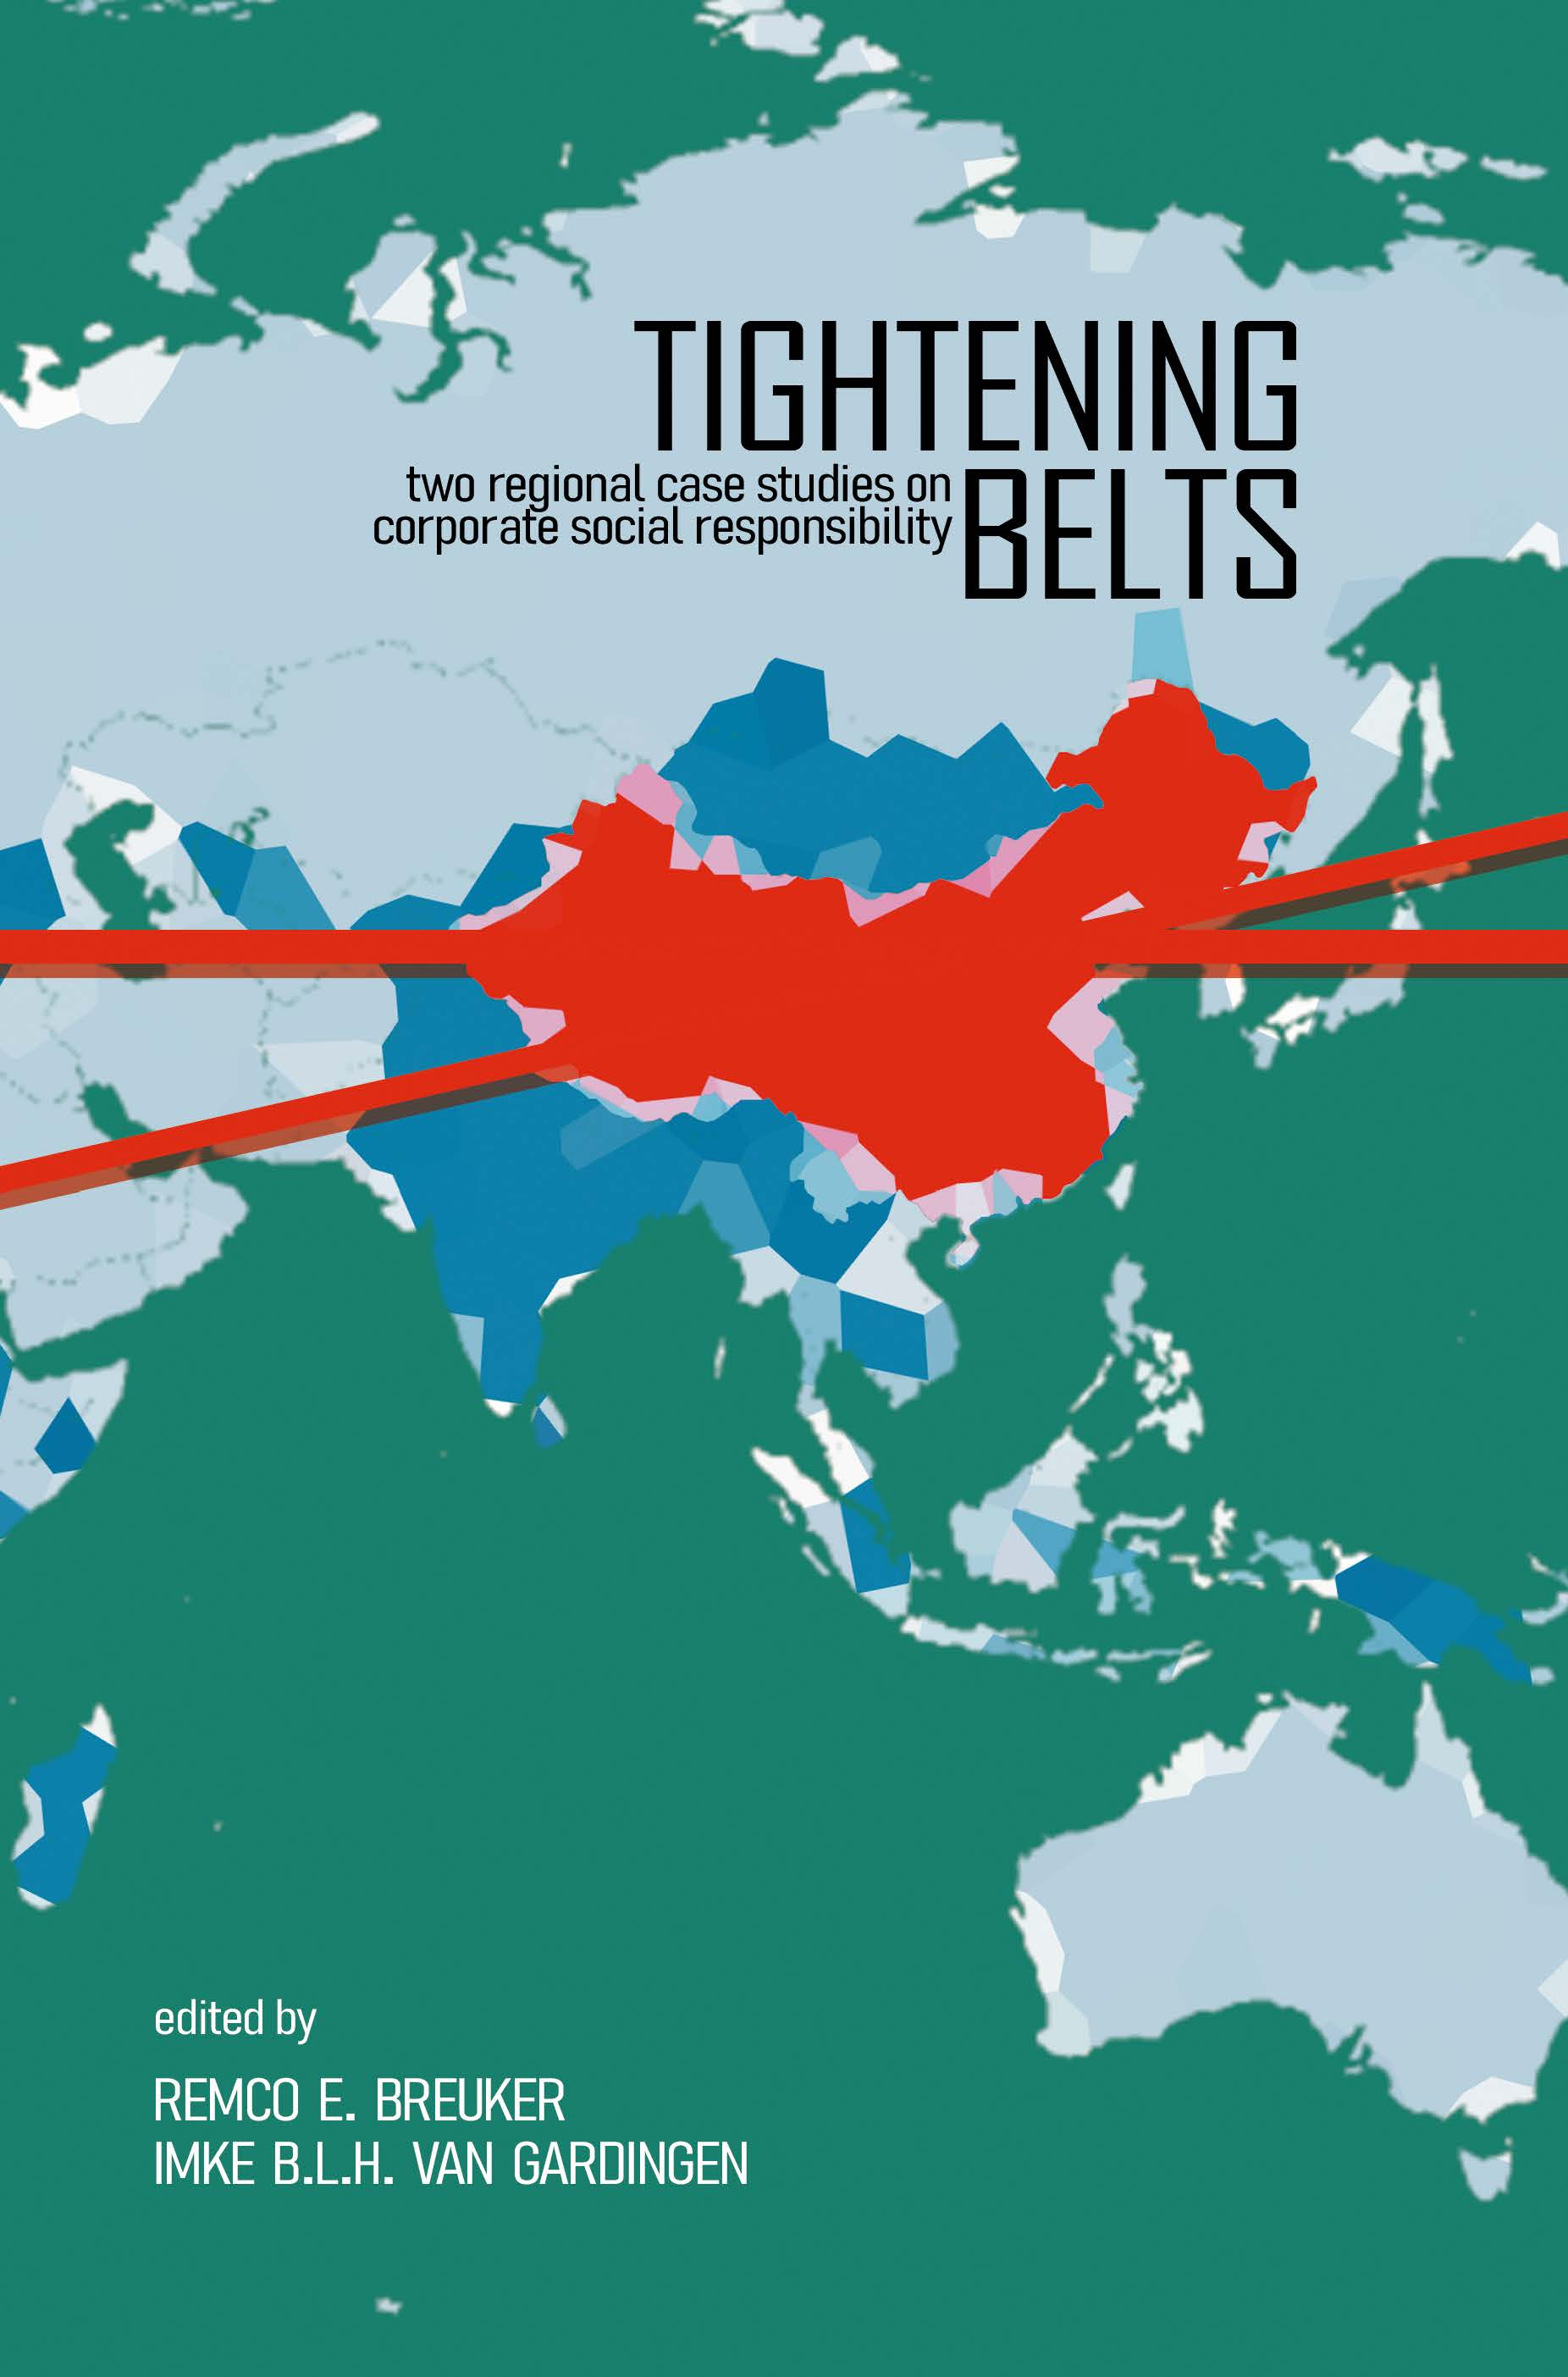 Tightening Belts - Two Regional Case Studies on Corporate Social Responsibility